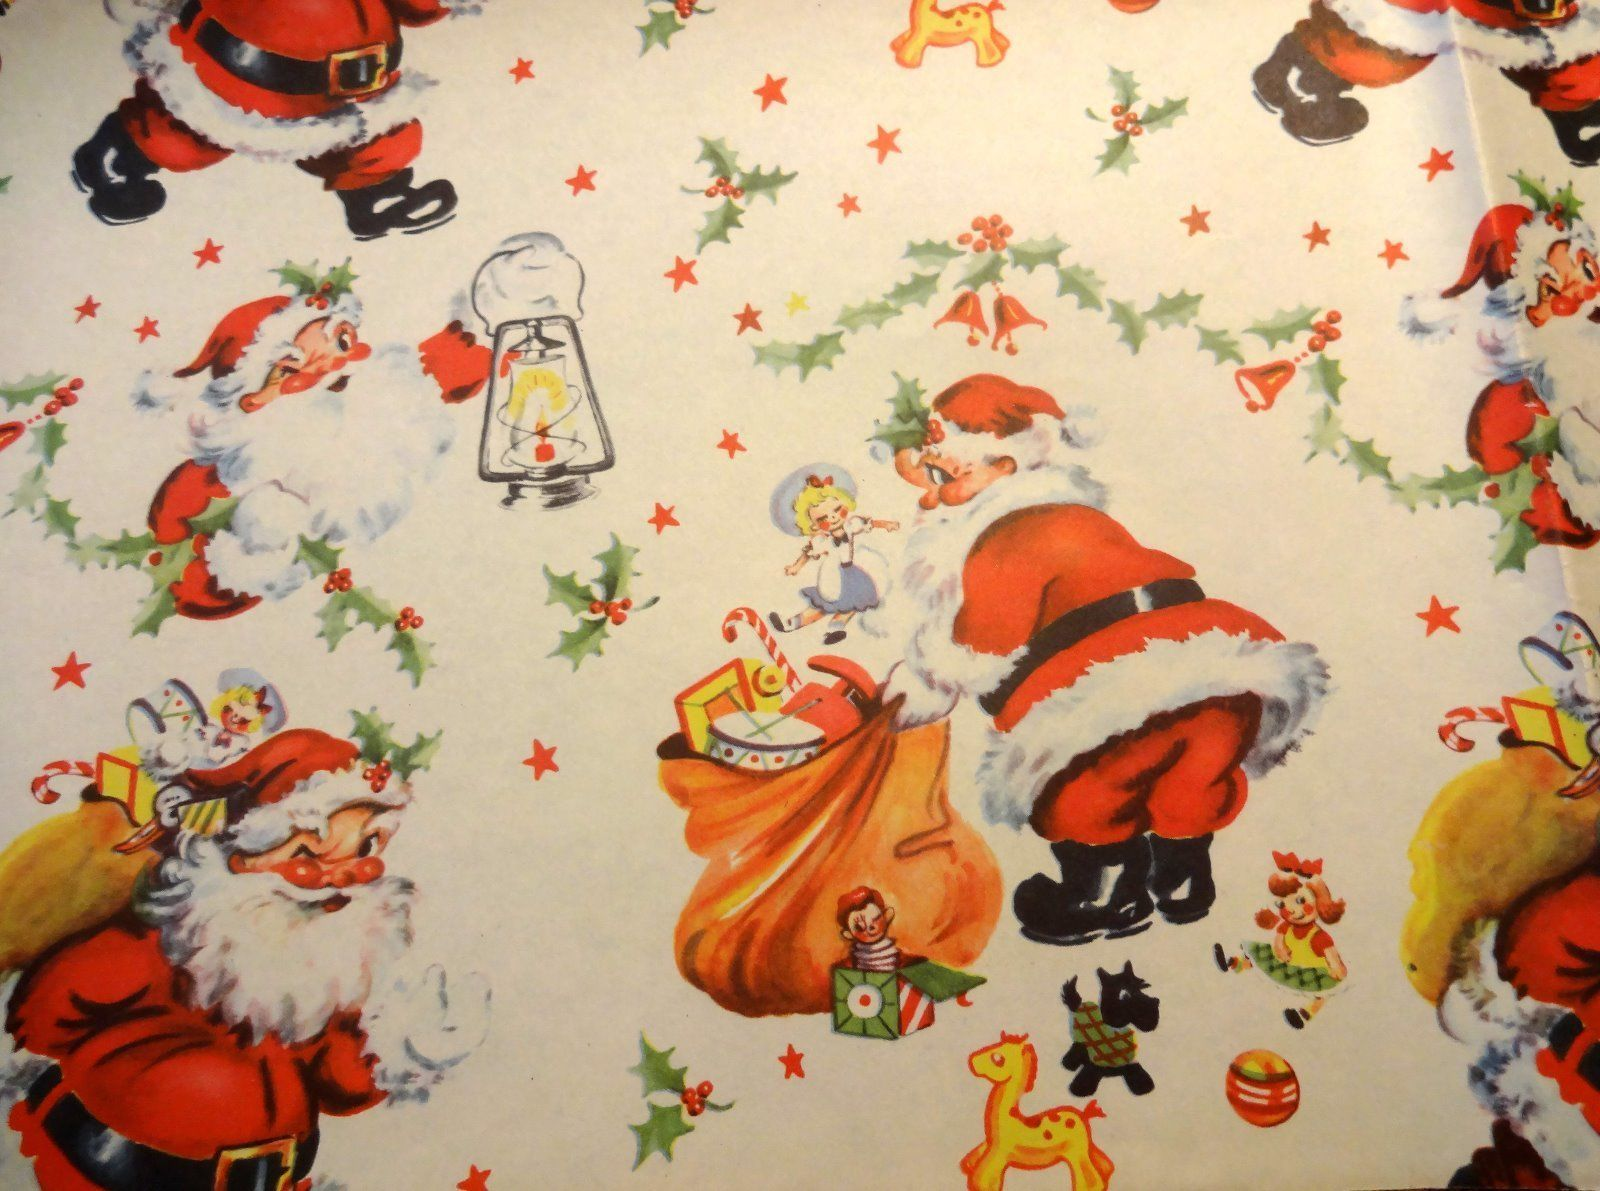 Vintage 1940 S Christmas Wrapping Paper Busy Santa Vintage Christmas Wrapping Paper Vintage Wrapping Paper Christmas Wrapping